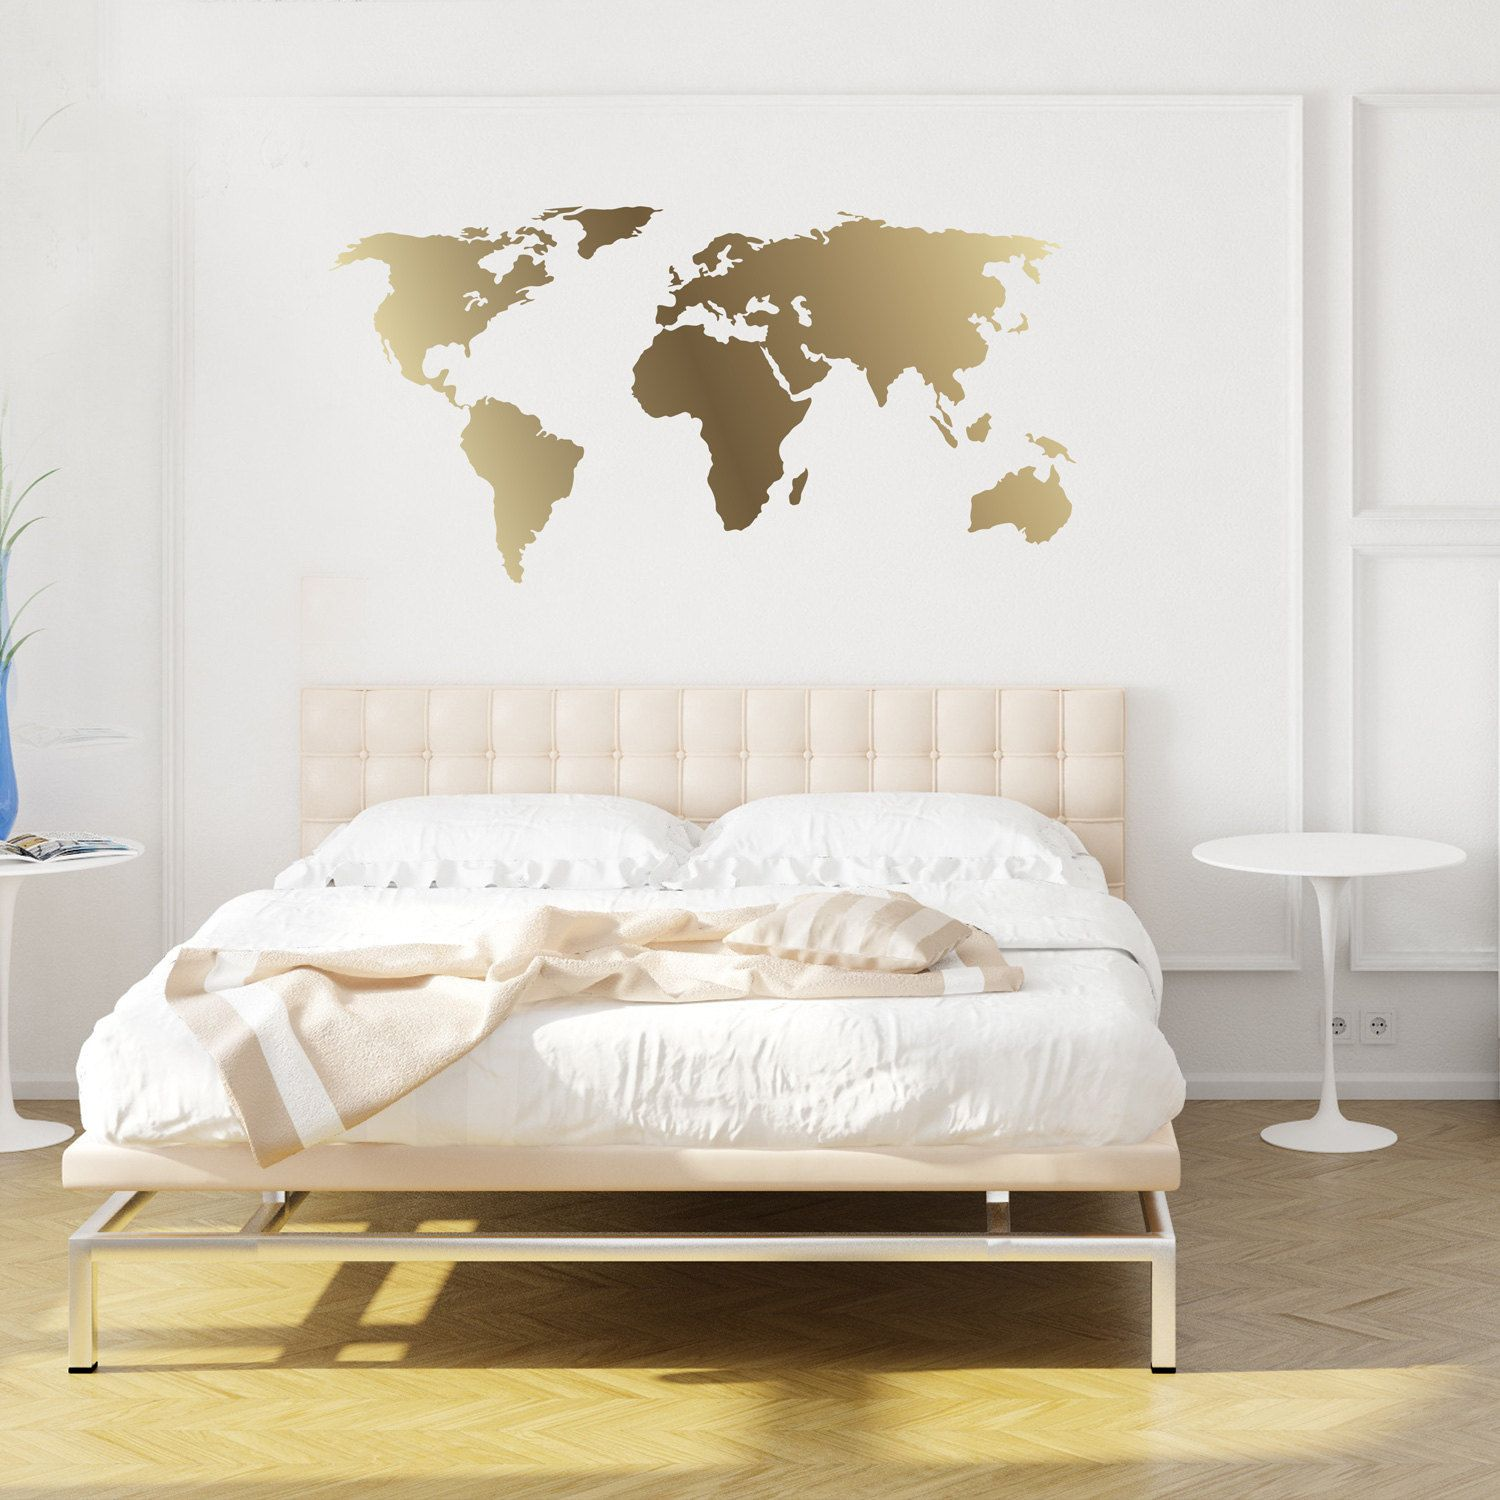 World map decal gold kiss cut world decal by chromantics by world map decal gold kiss cut world decal by chromantics by chromantics on etsy gumiabroncs Gallery